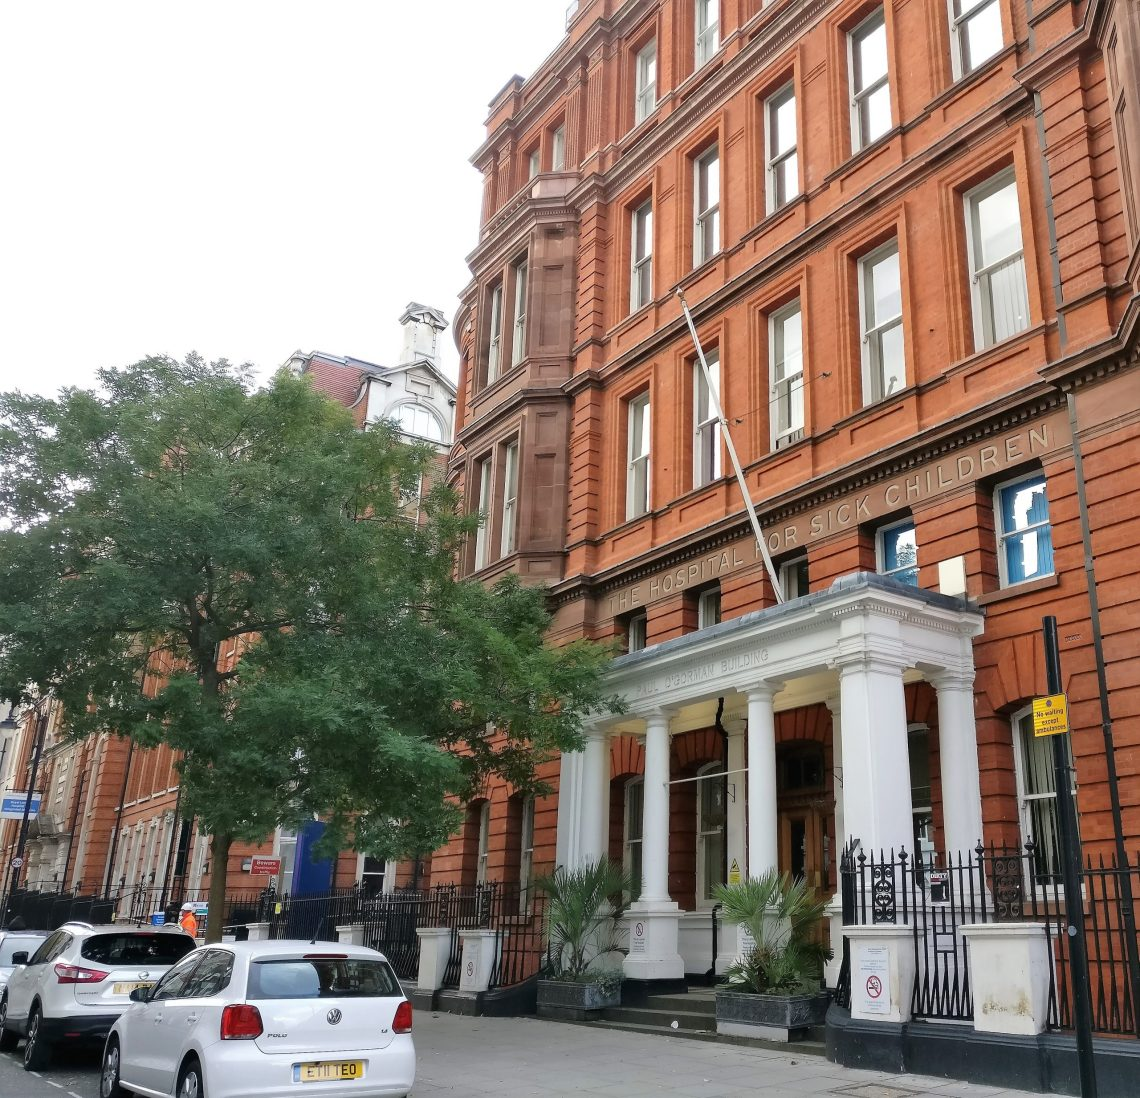 The Hospital for Sick Children on Great Ormond Street. This is part of our walking tour of Holborn and Bloomsbury